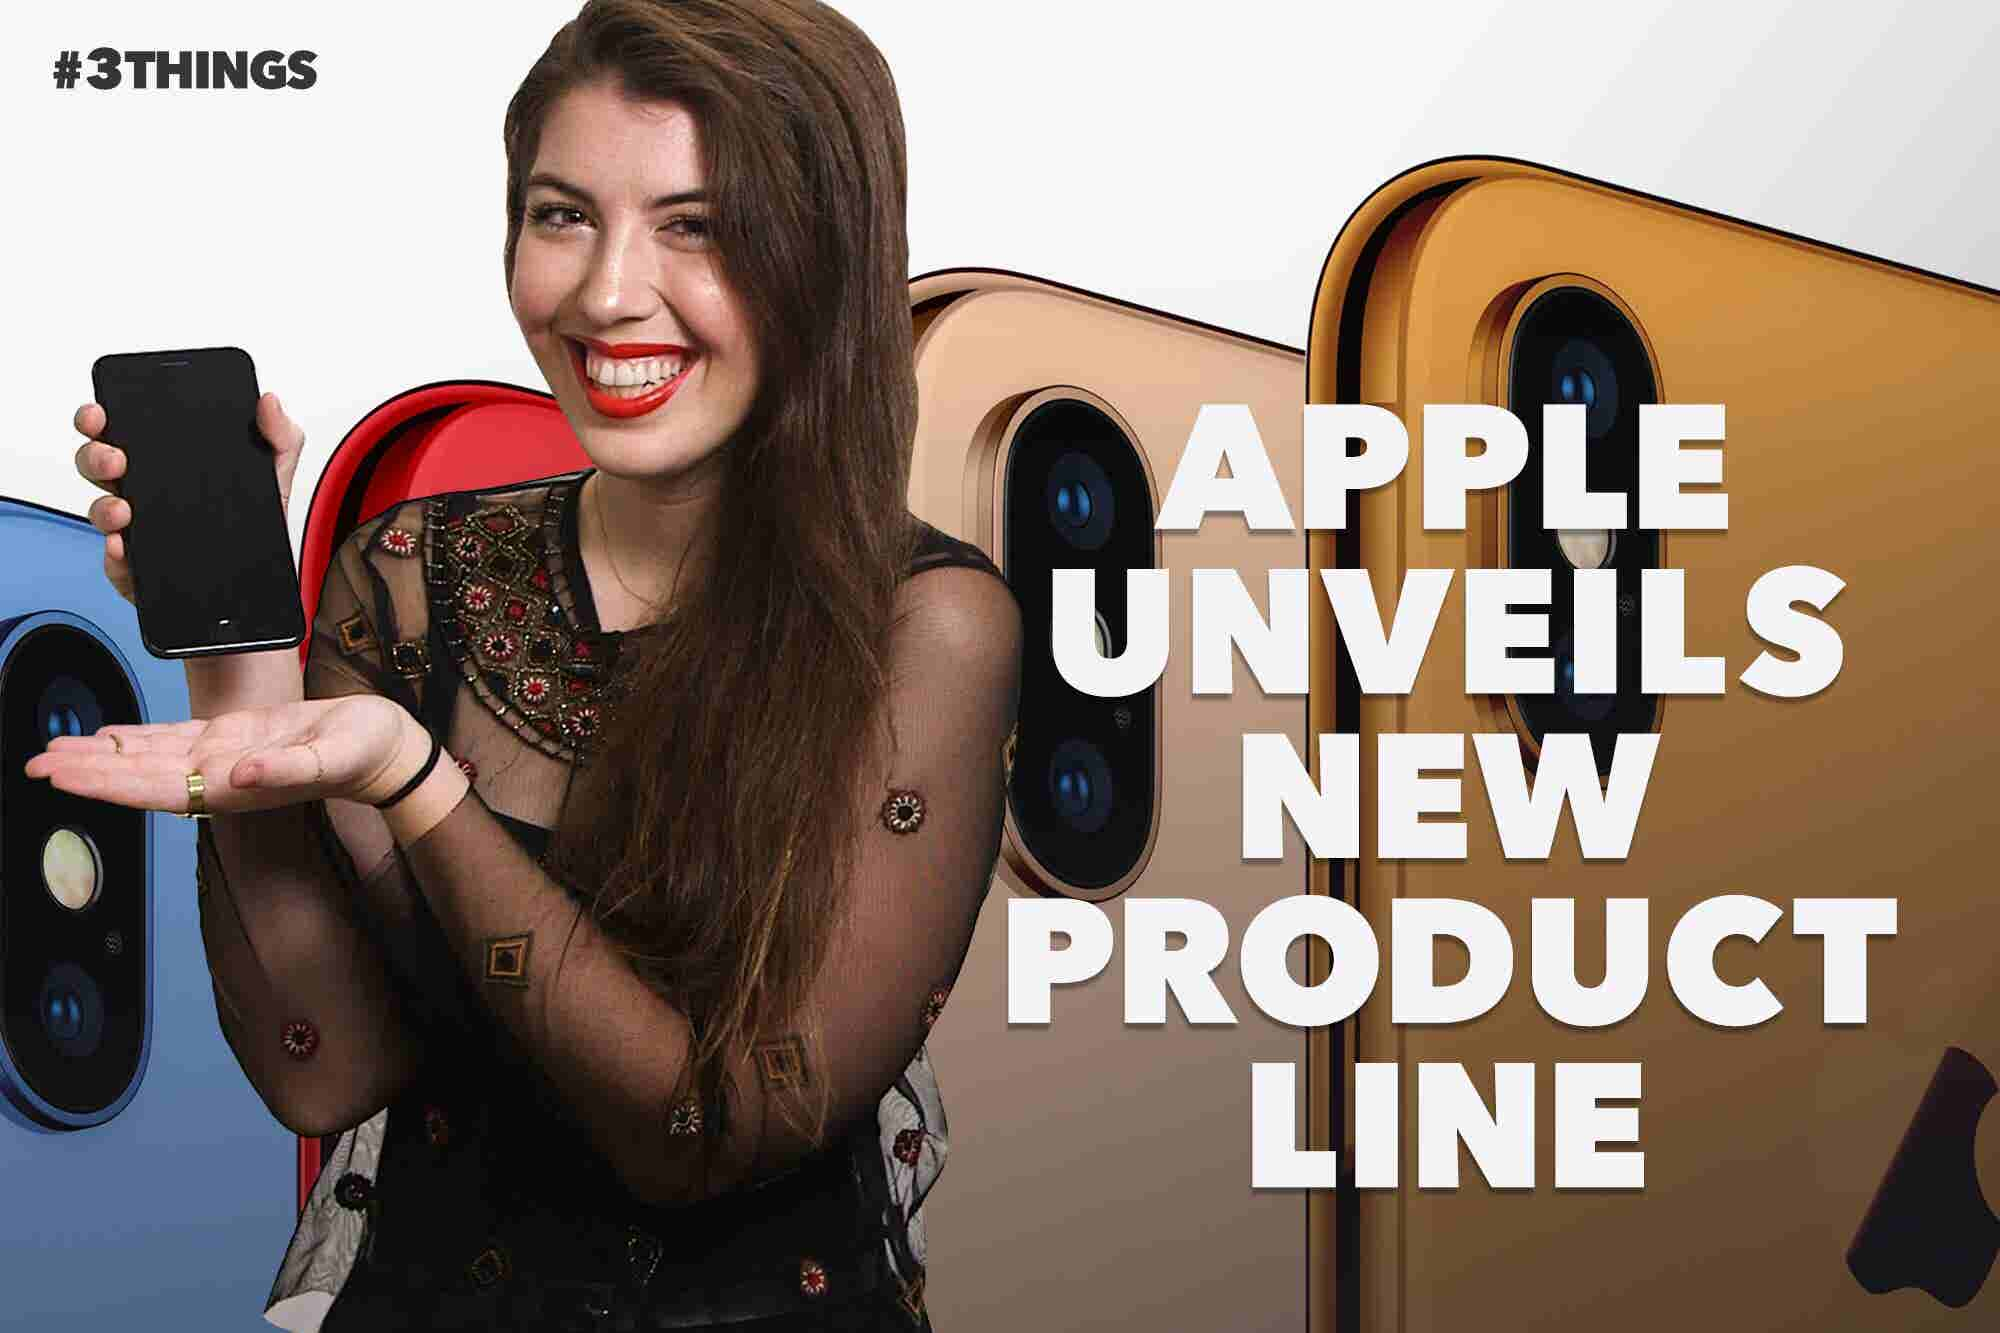 Apple Unveils New Product Line. 3 Things to Know Today.